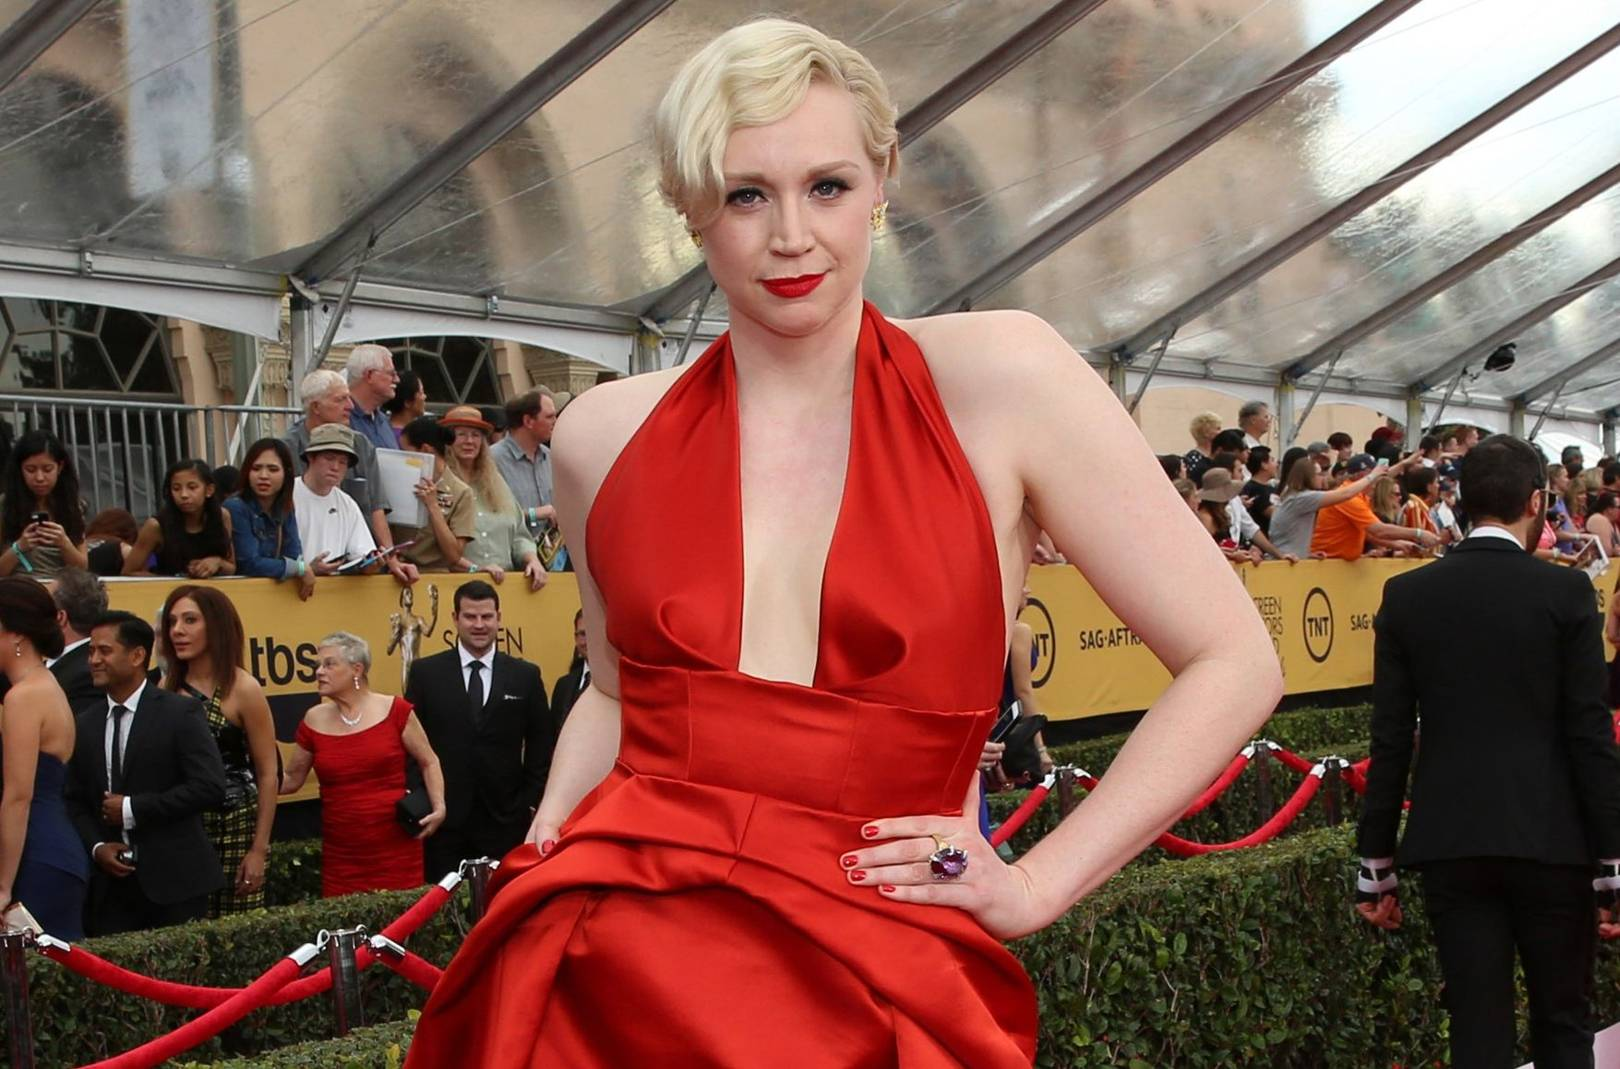 ICloud Gwendoline Christie nudes (32 foto and video), Pussy, Is a cute, Instagram, legs 2019